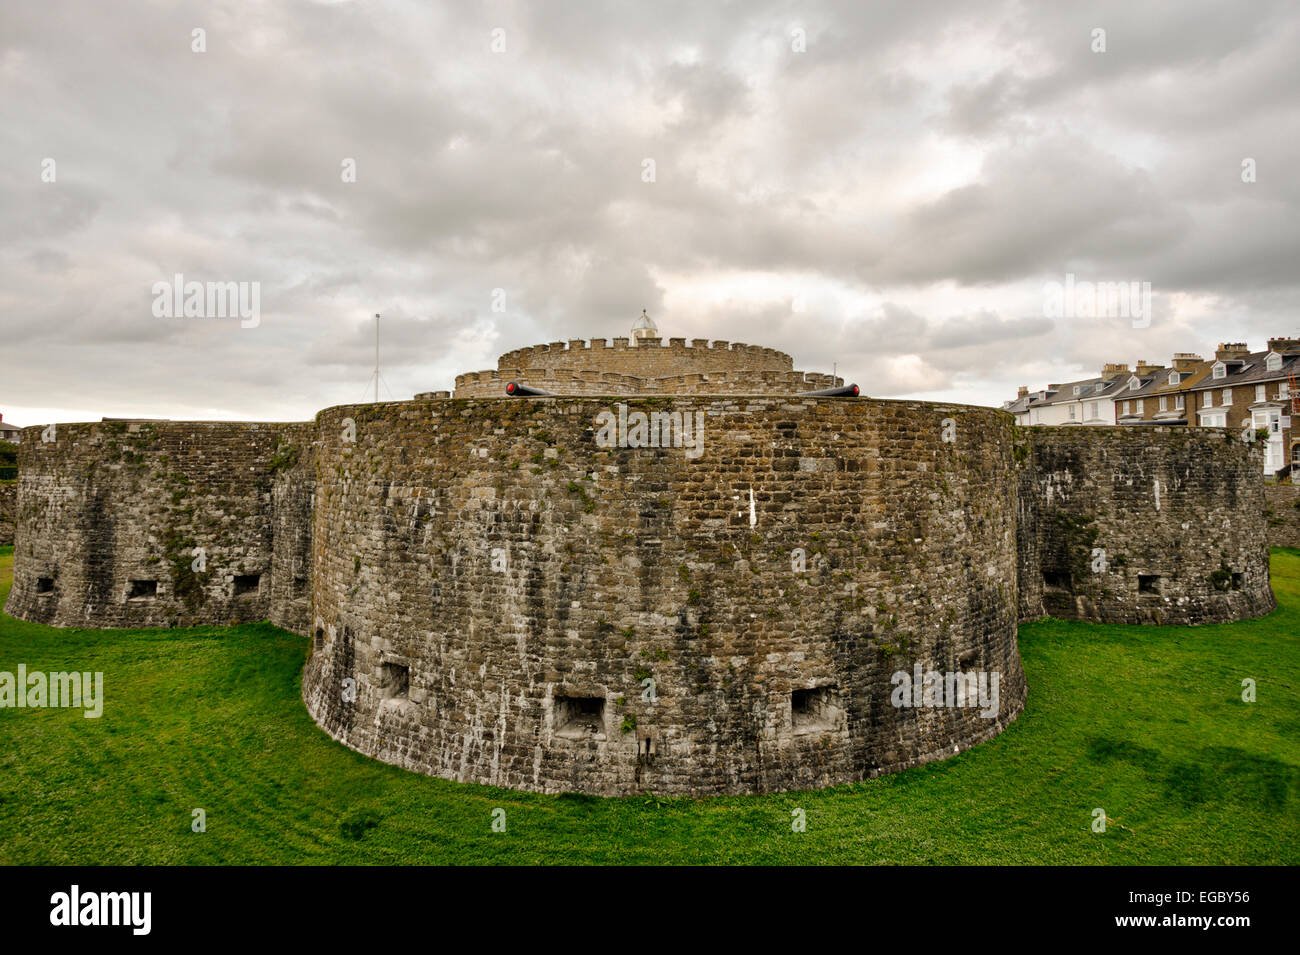 England deal castle outer walls and moat with keep in background castle outer walls and moat with keep in background under grey cloudy sky hdr realistic thecheapjerseys Image collections